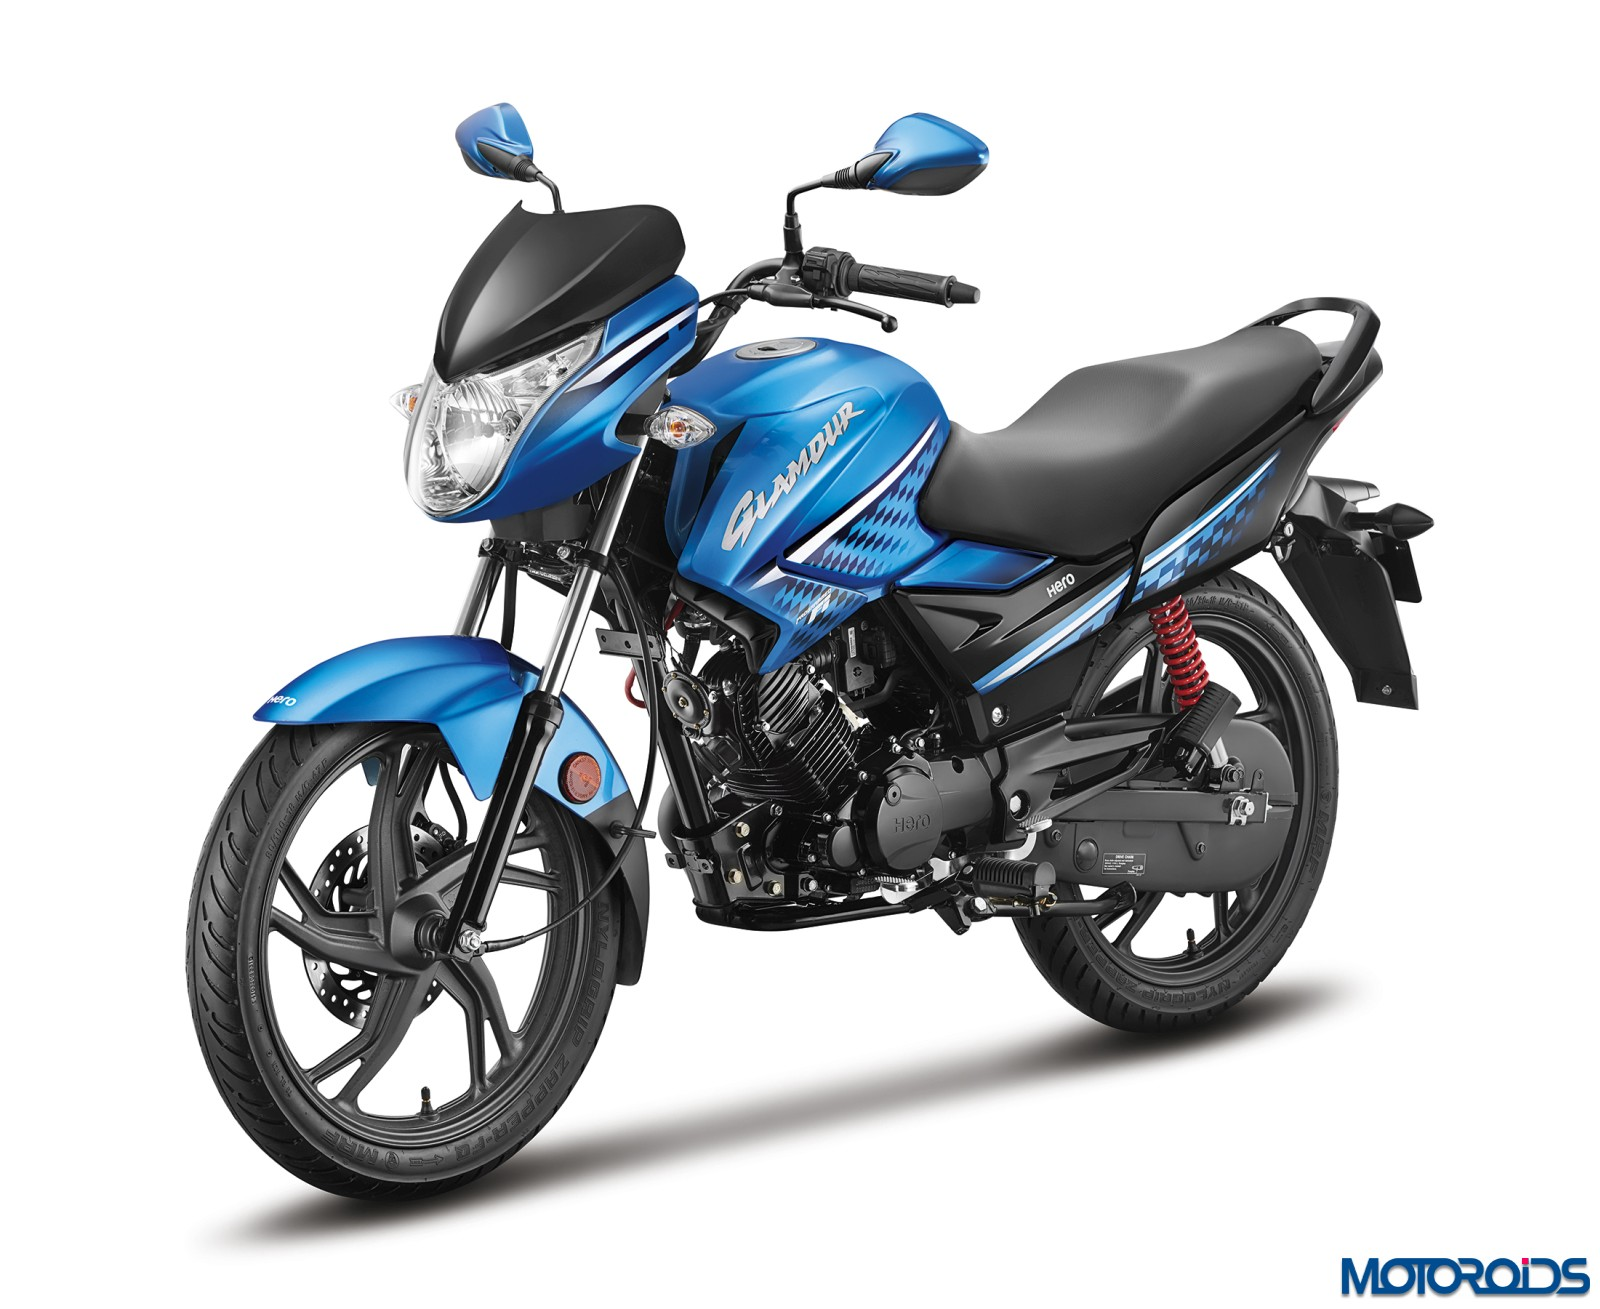 Hero-MotoCorp-Glamour-FI-Techno-Blue-3-4th-Front-Rev-Side